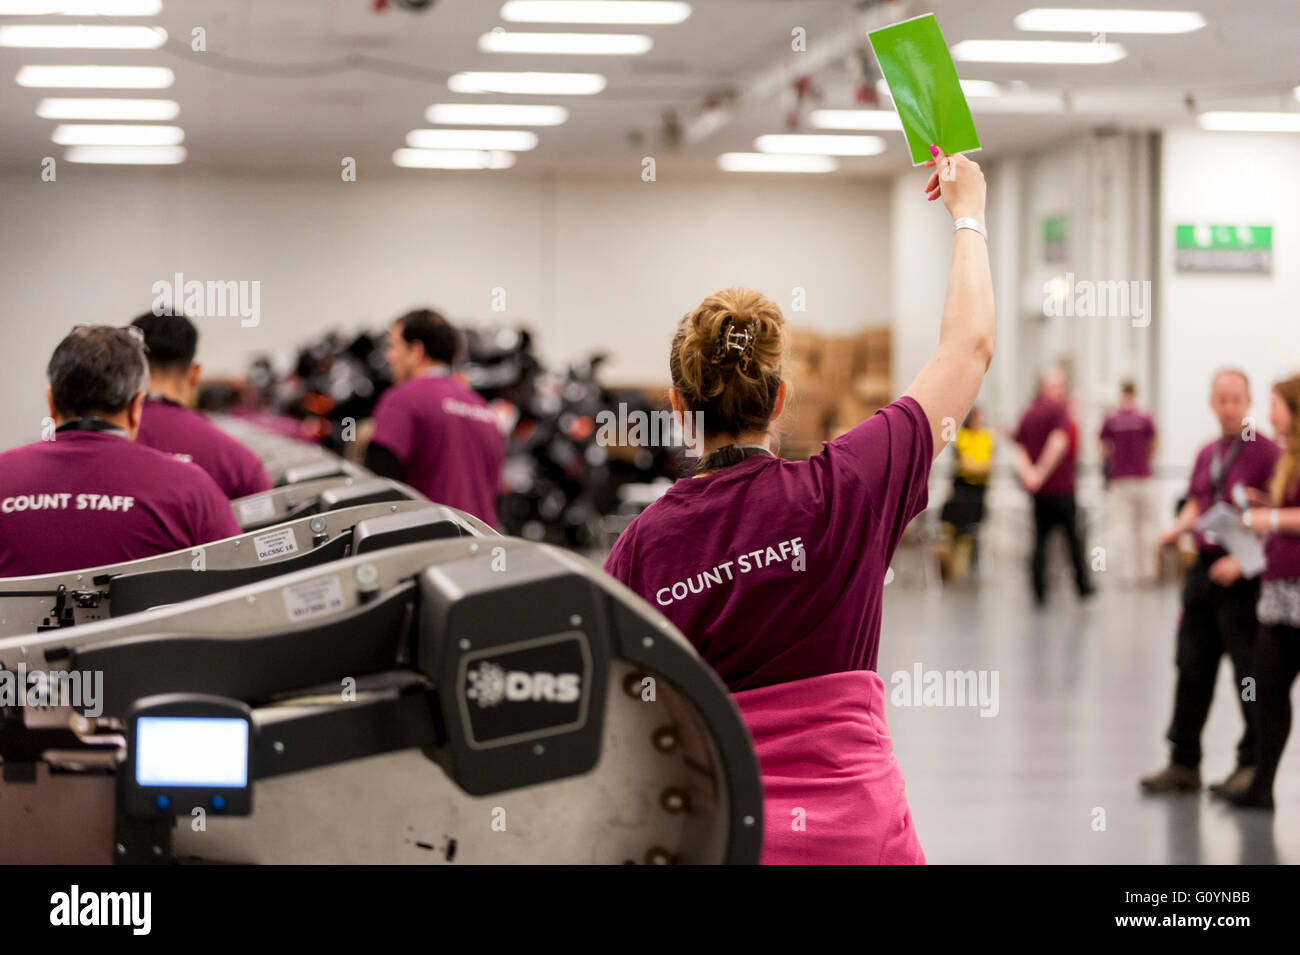 London, UK.  6 May 2016. A counter signals for another ballot box to be fed into her automated counting machine. - Stock Image